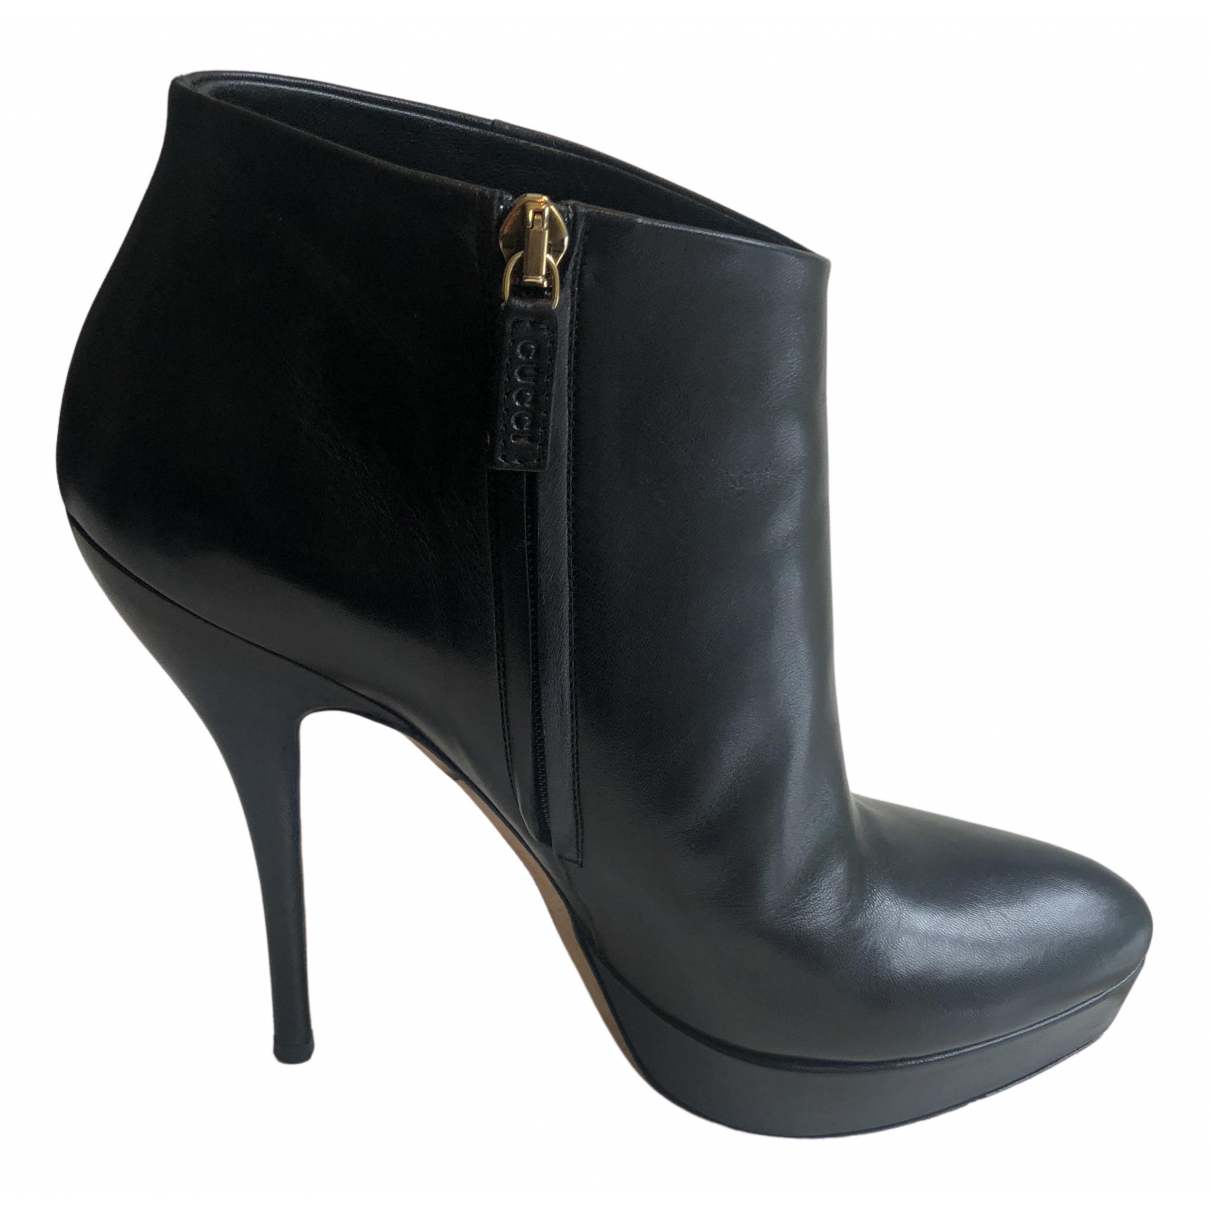 Gucci N Black Leather Ankle boots for Women 38 EU